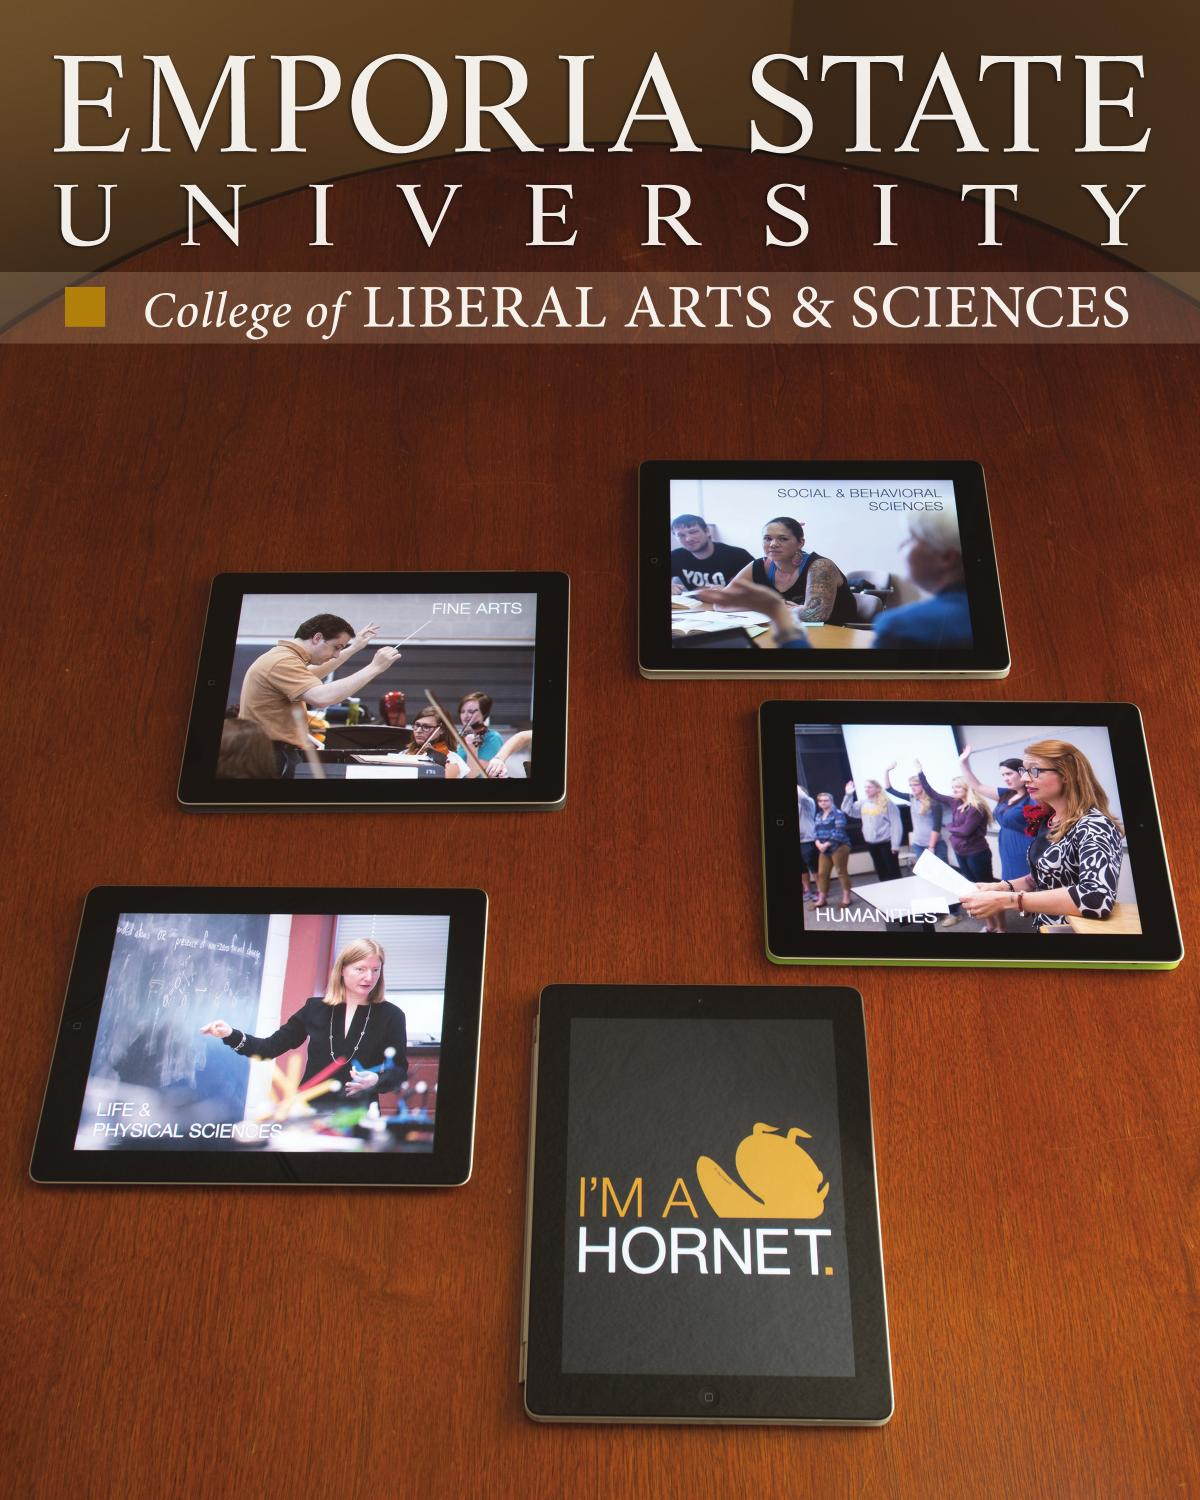 la s home college of liberal arts sciences state las viewbook 2 years ago esupub